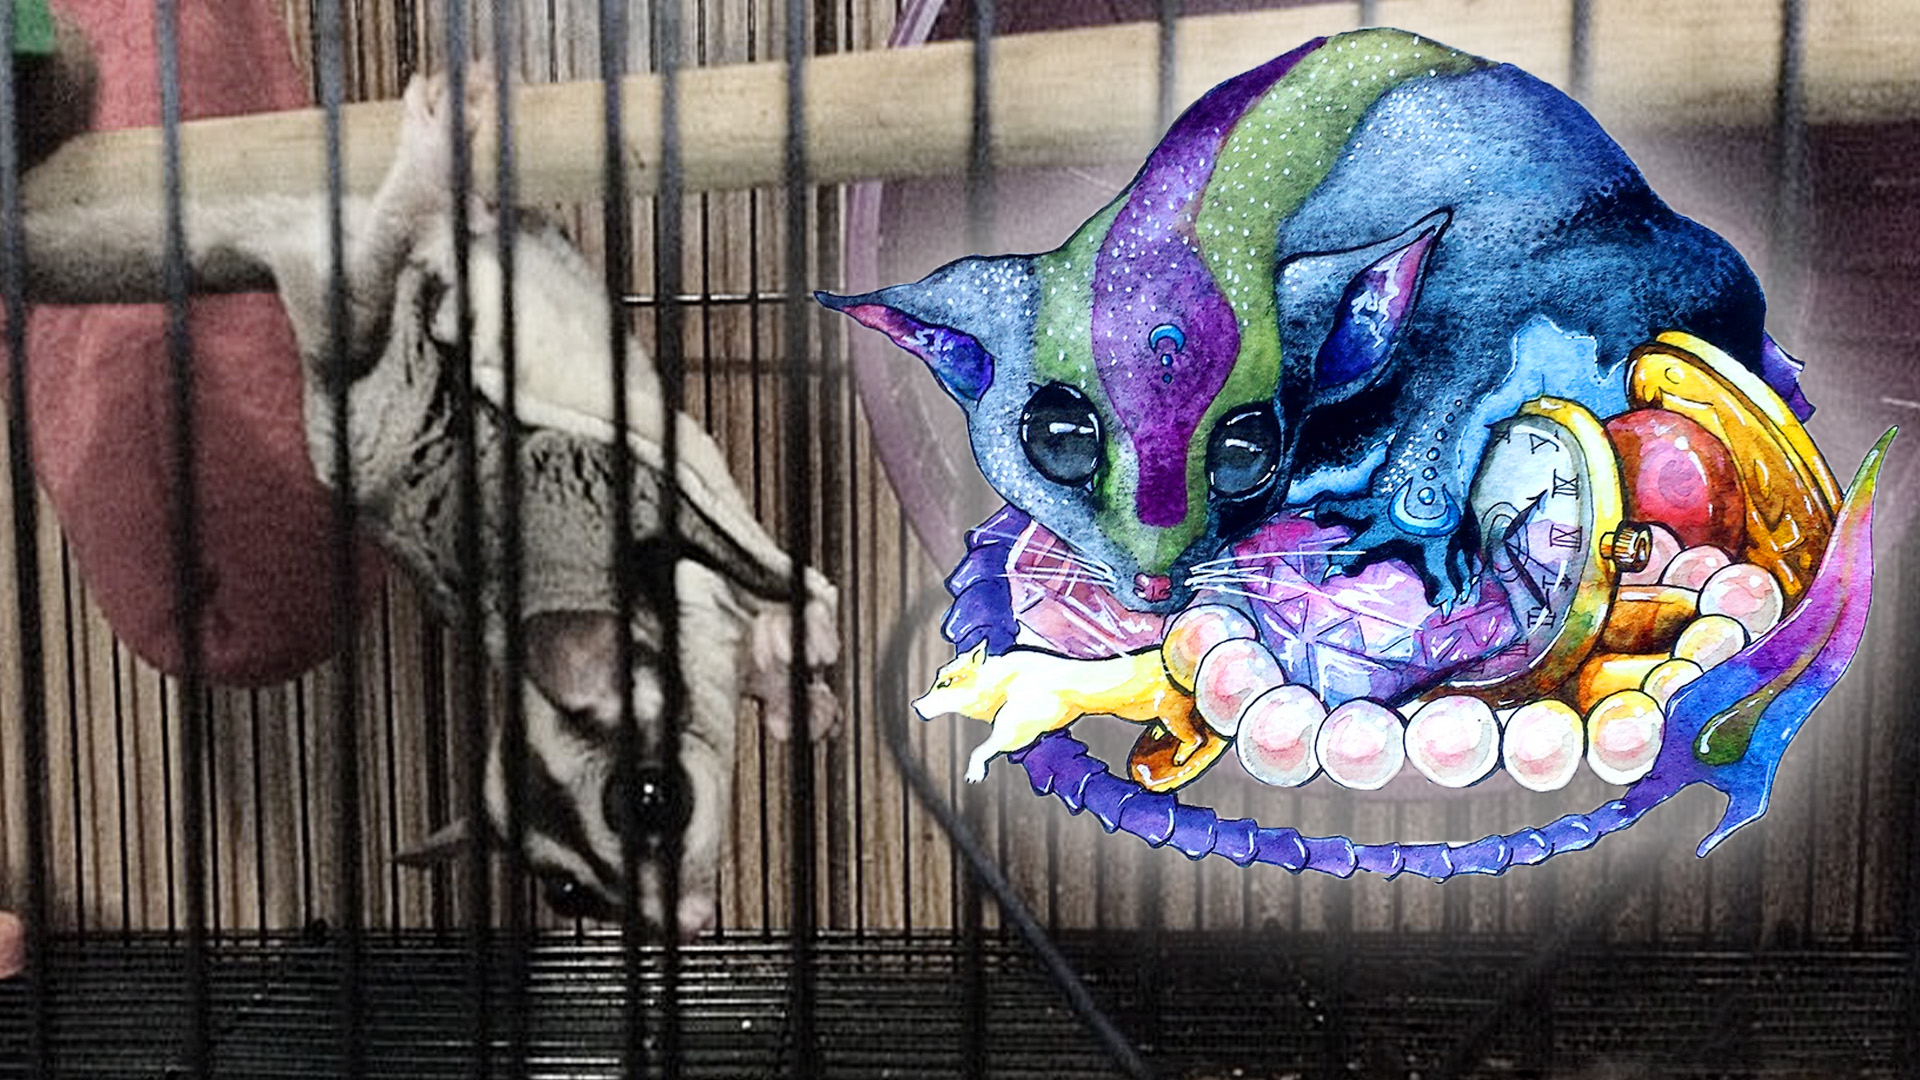 Tink, a female sugar glider hanging from one of her bars upside down in her cage, next to a illustration inspired by her of a Pathfinder monster, which resembles a blue and purple glider.